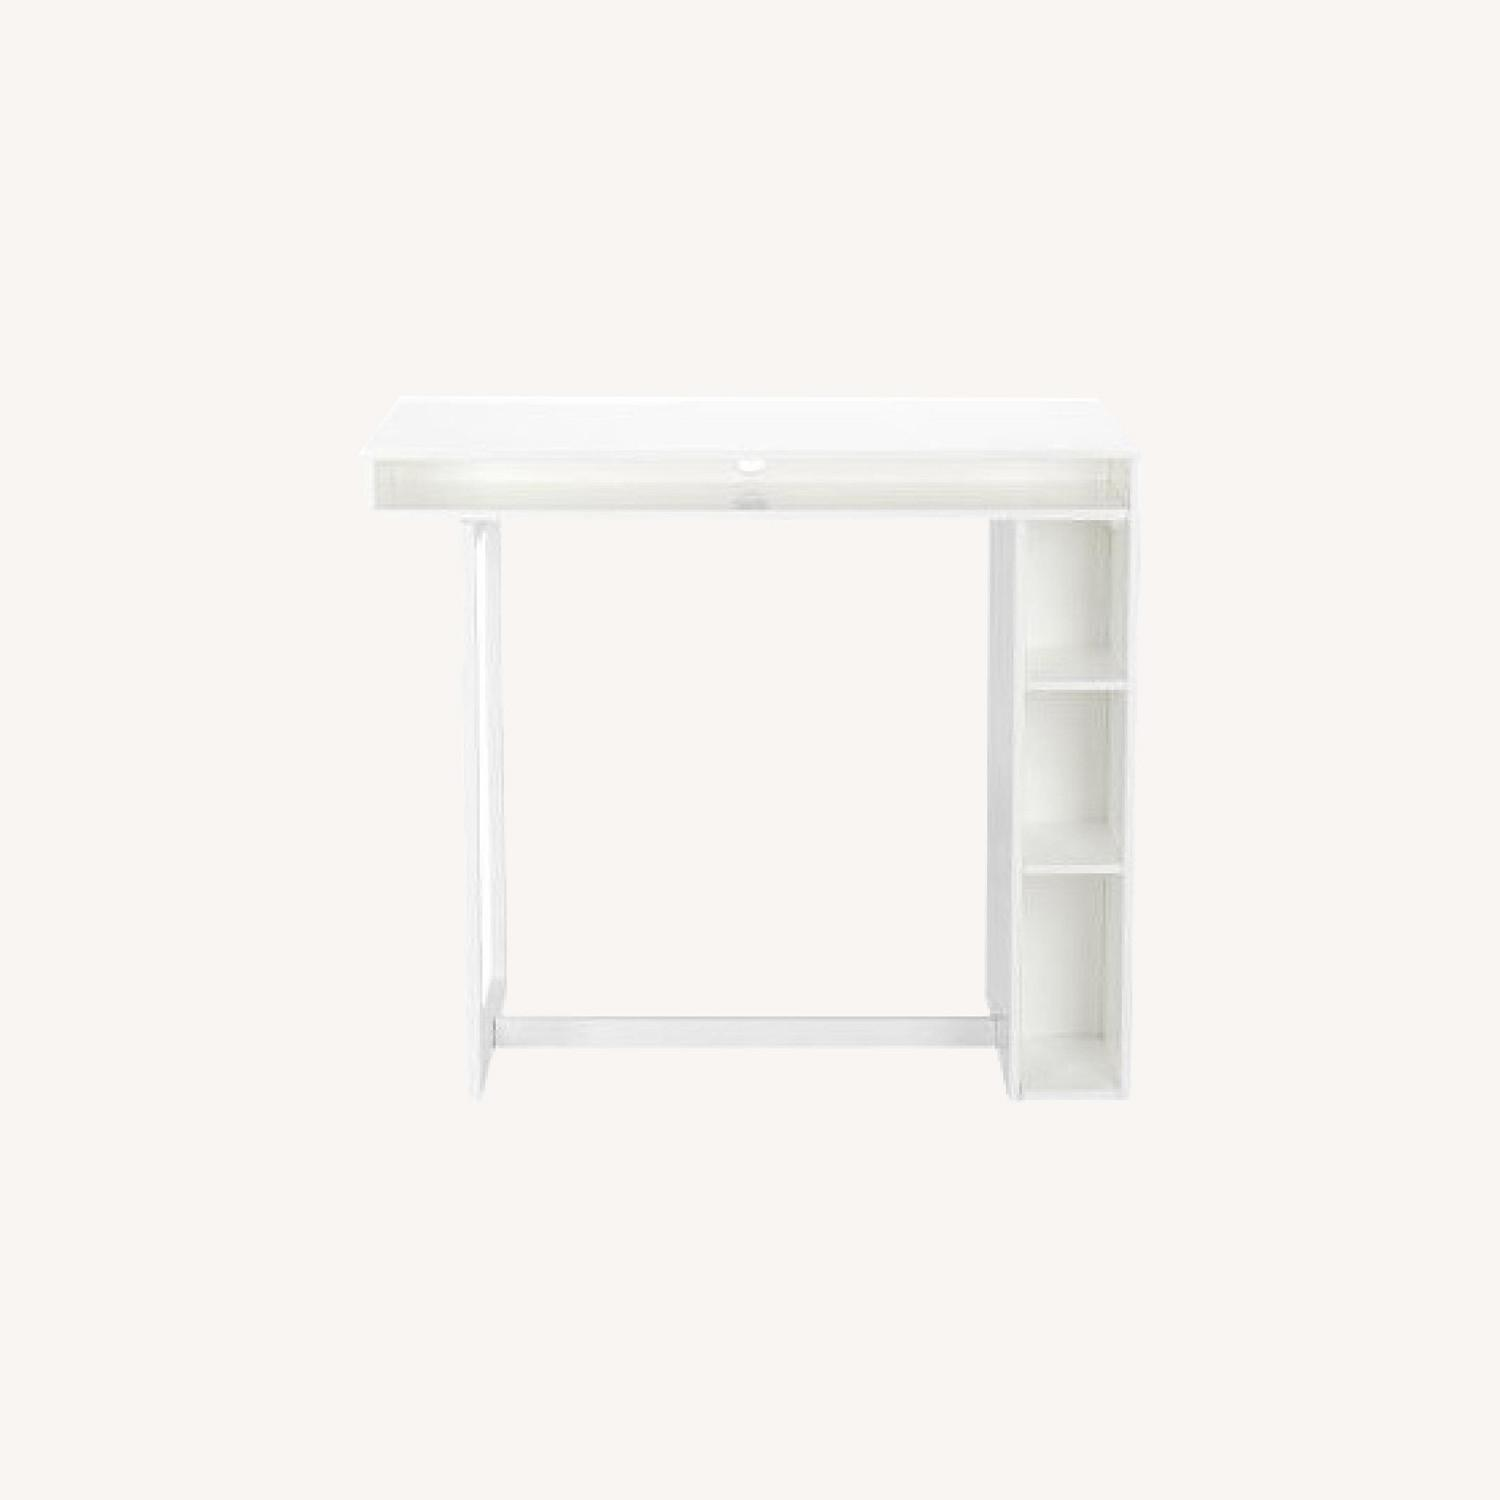 CB2 Public High Dining Table / Standing Desk - image-0